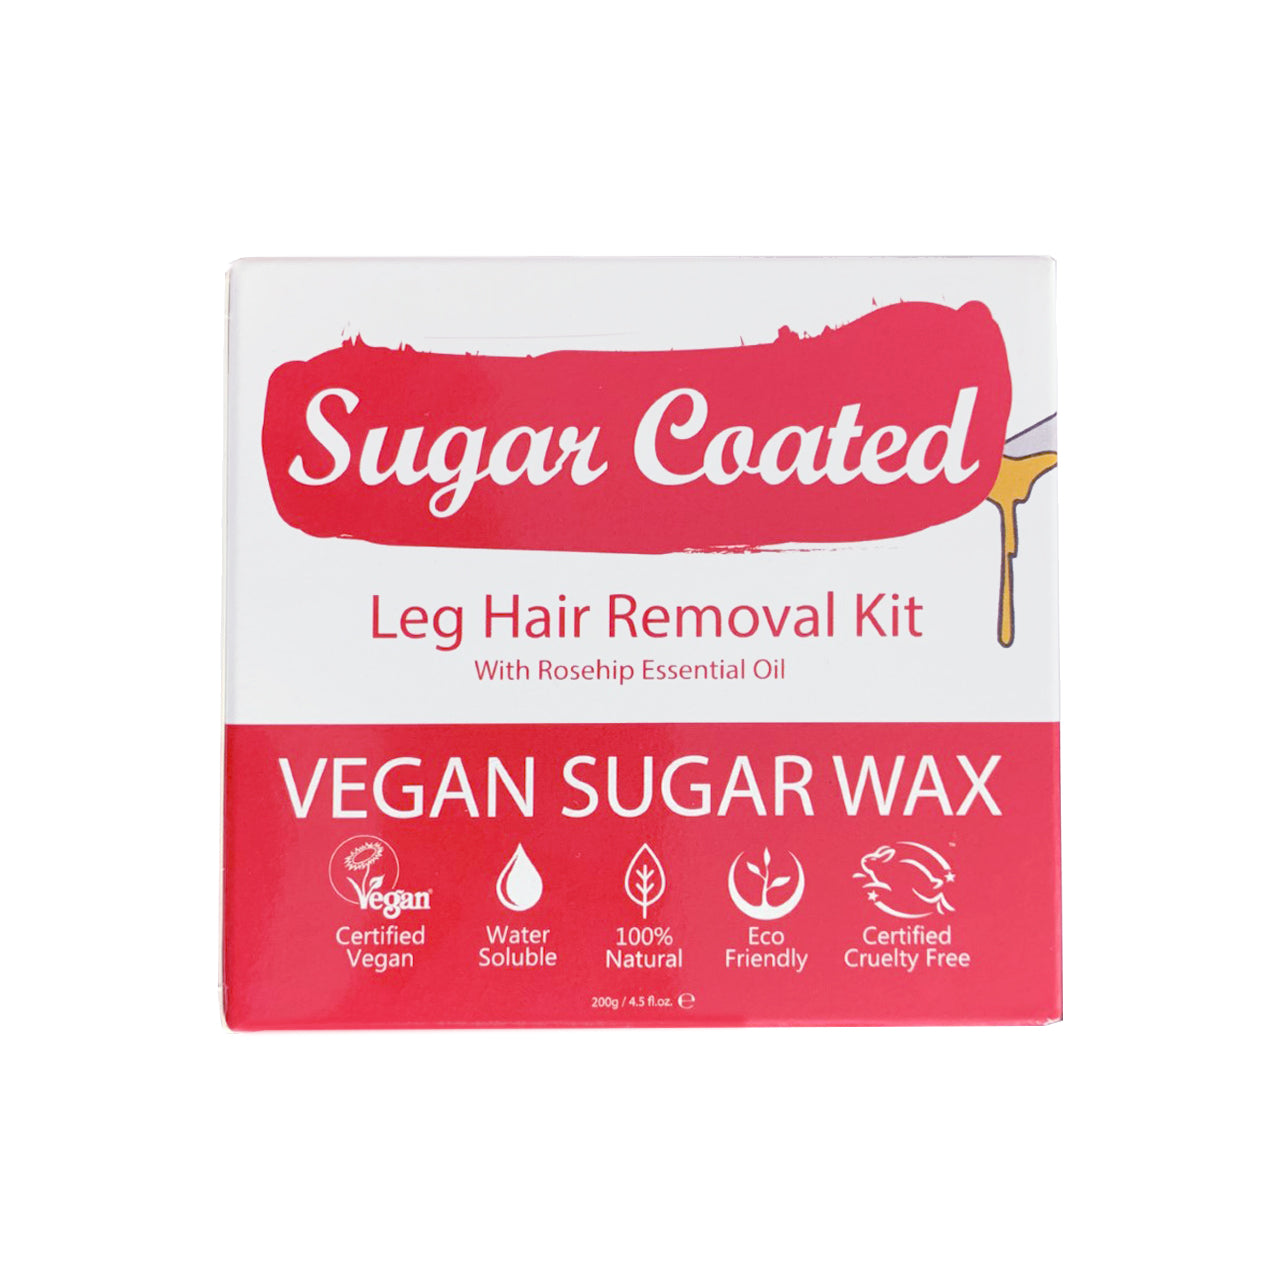 Sugar Coated Legs Hair Removal Kit in rosehip colour (front). Icons showing benefits. Vegan, water-soluble, natural, eco-friendly, cruelty-free